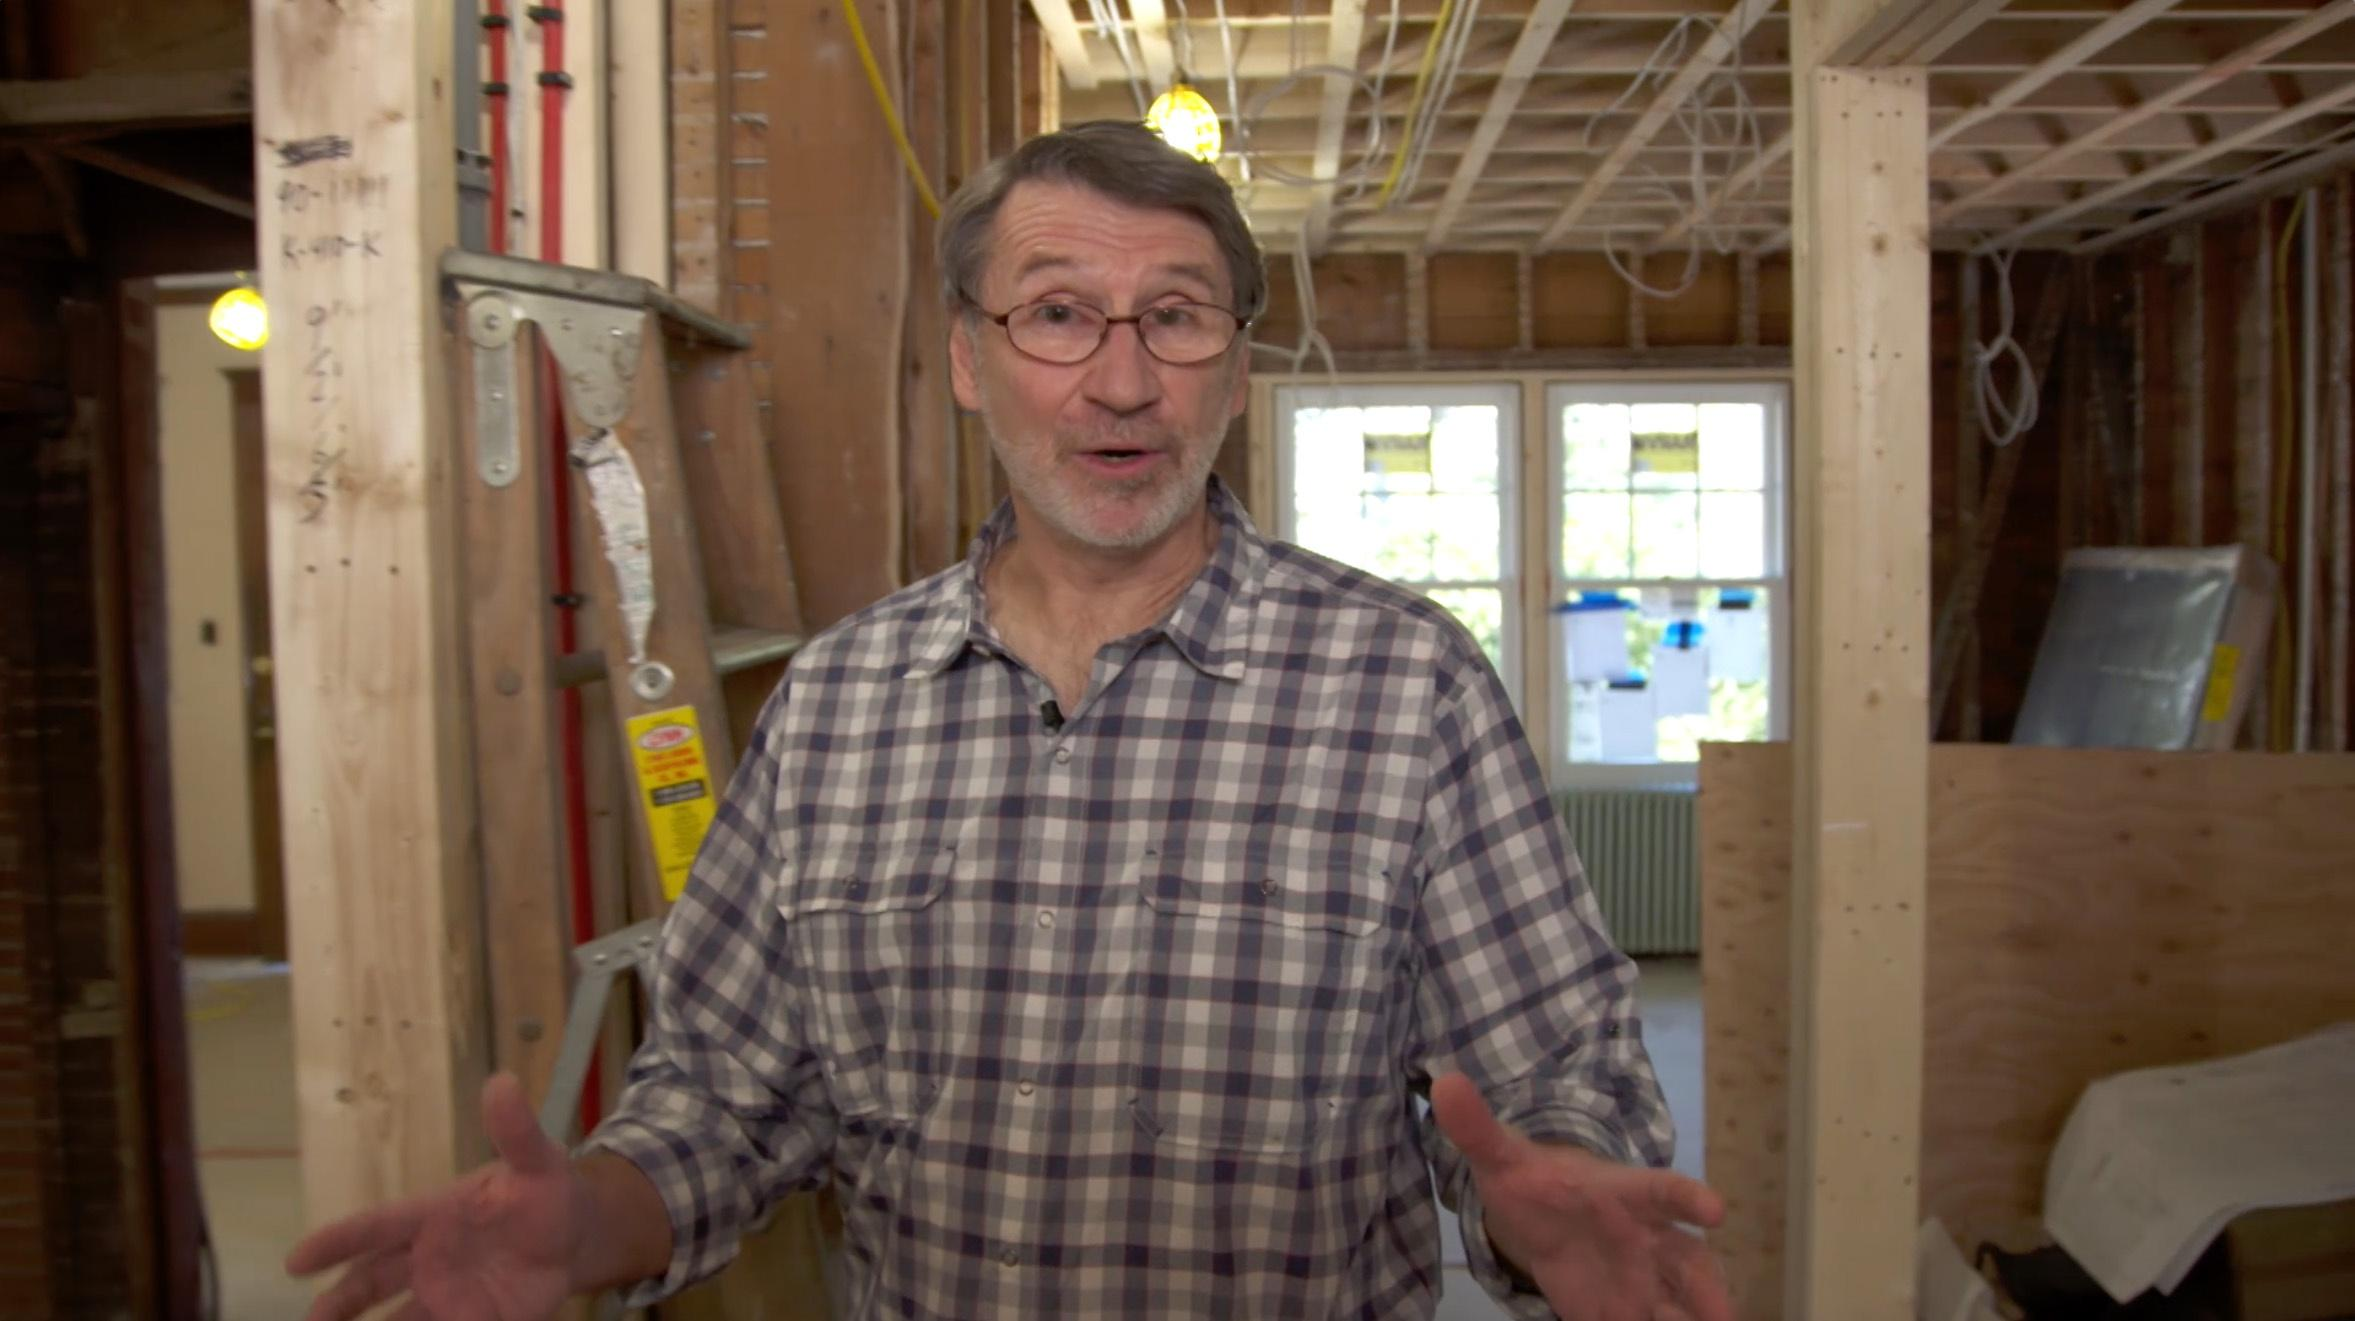 How This Old House is Helping Close the Skills Gap